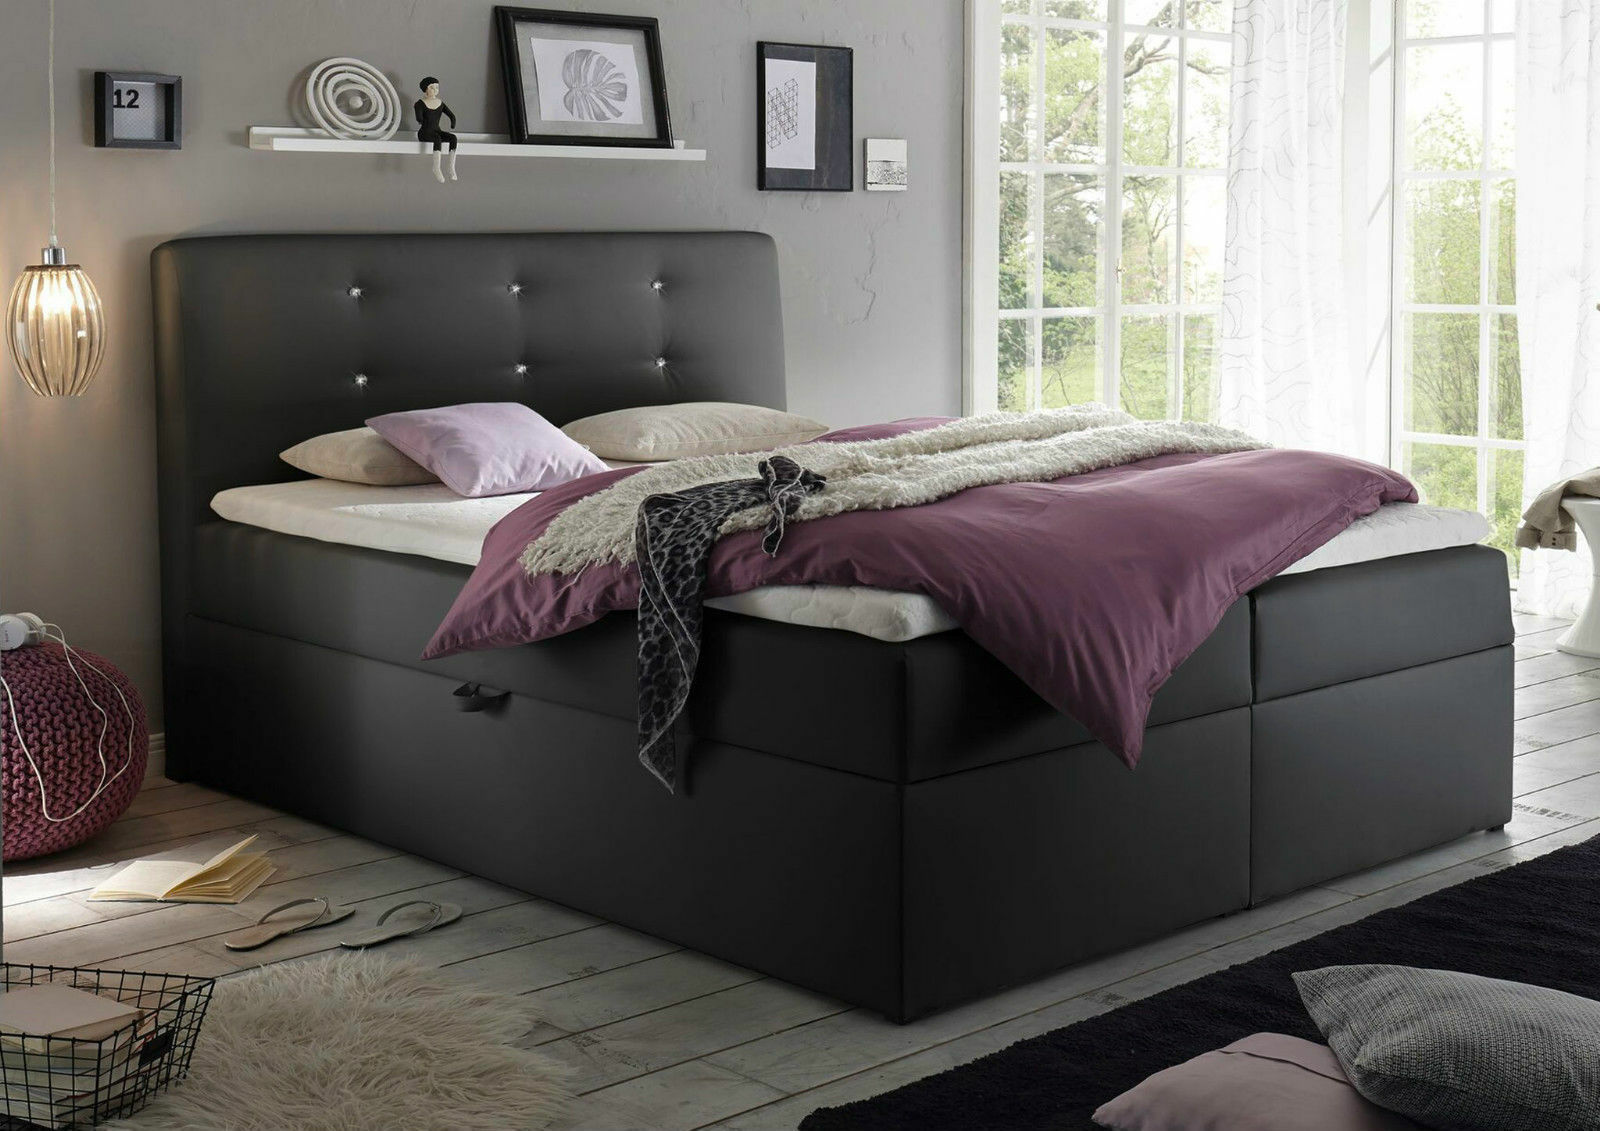 180x200 cm boxspringbett bett komfortbett hotelbett schlafzimmerbett schwarz ebay. Black Bedroom Furniture Sets. Home Design Ideas